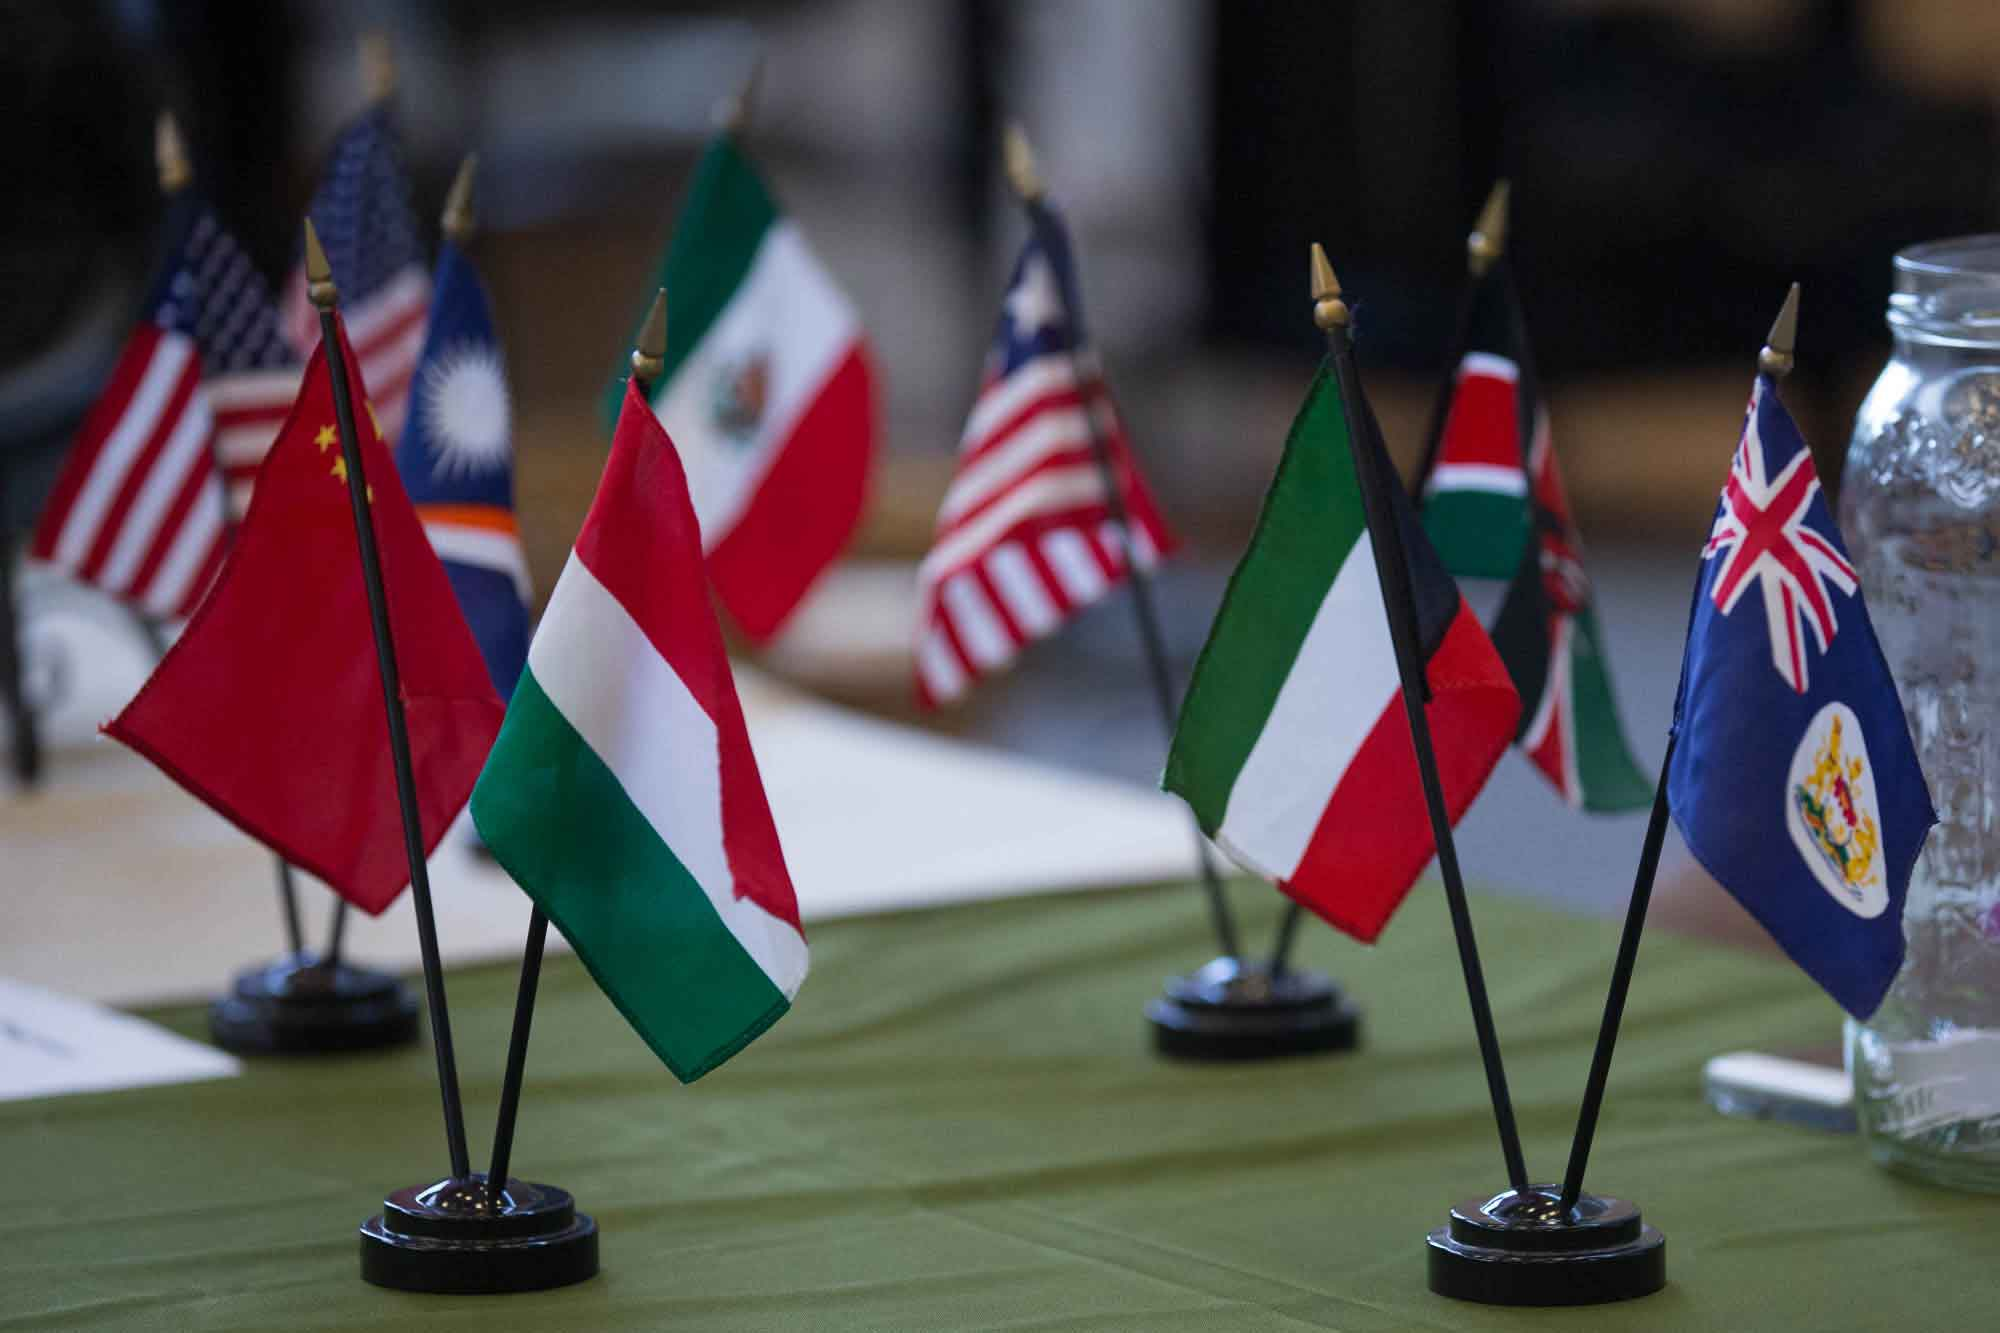 Tiny international flags decorate a table